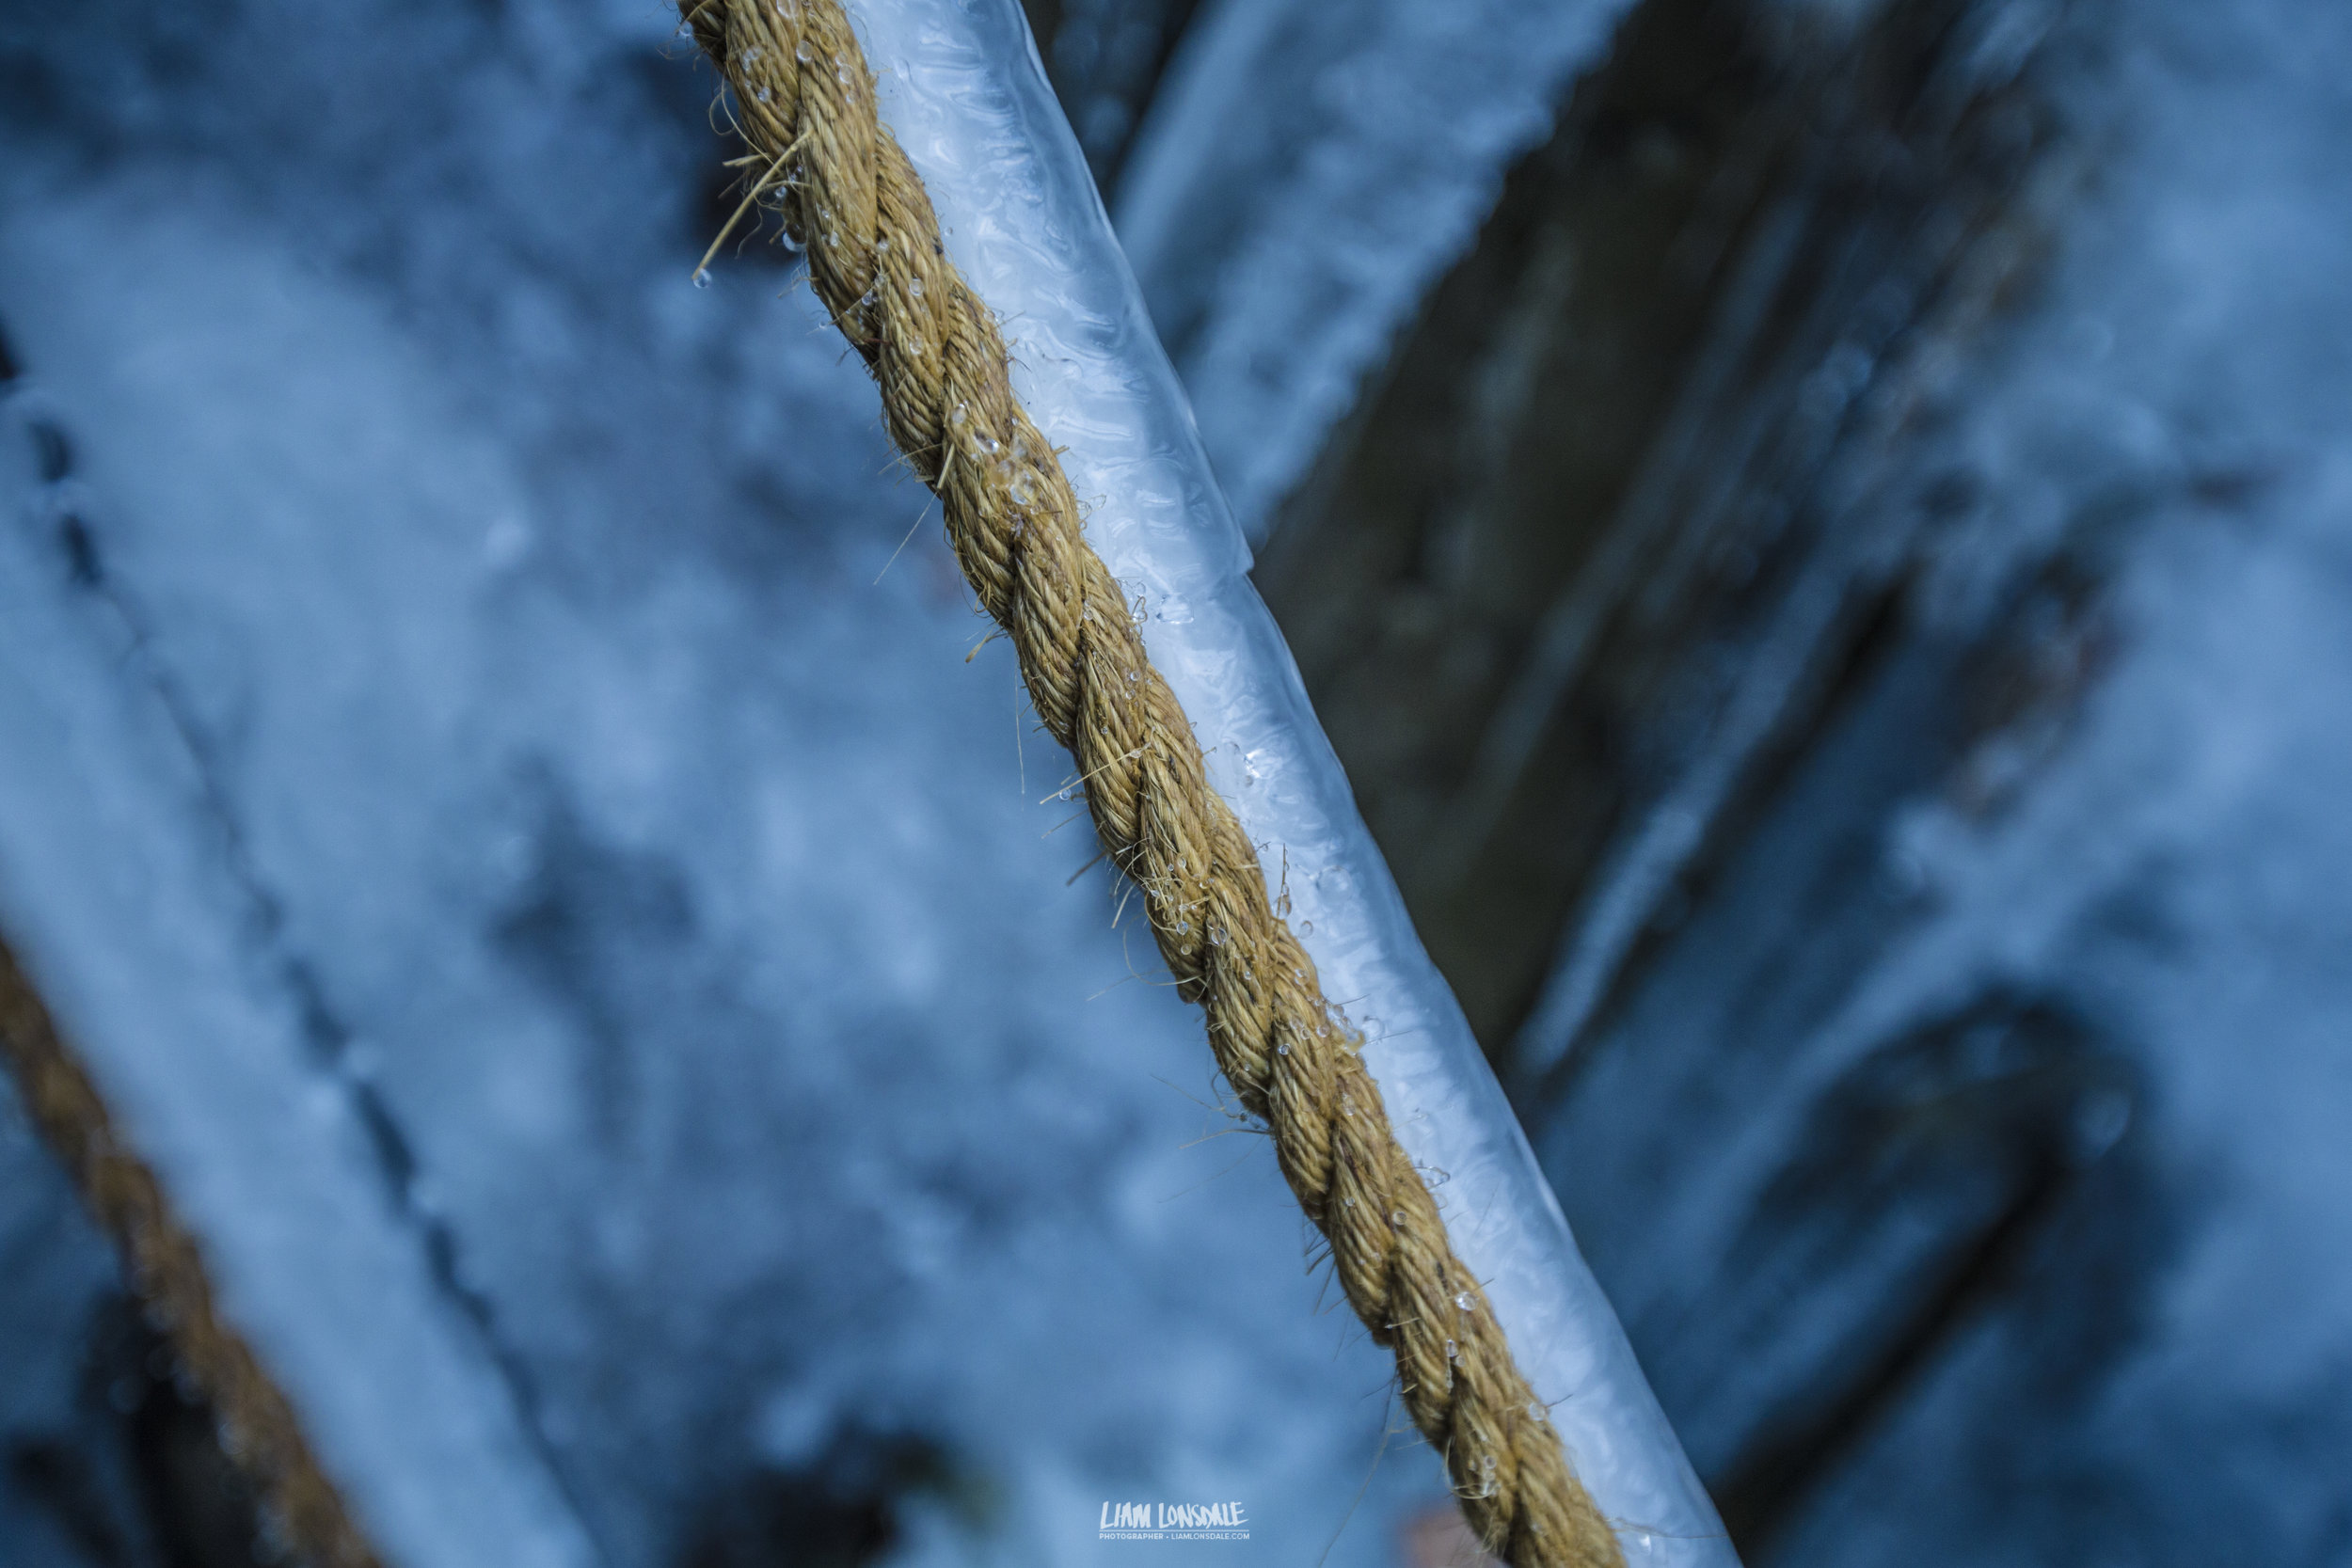 Weird formations of ice on rope © L LONSDALE 2017